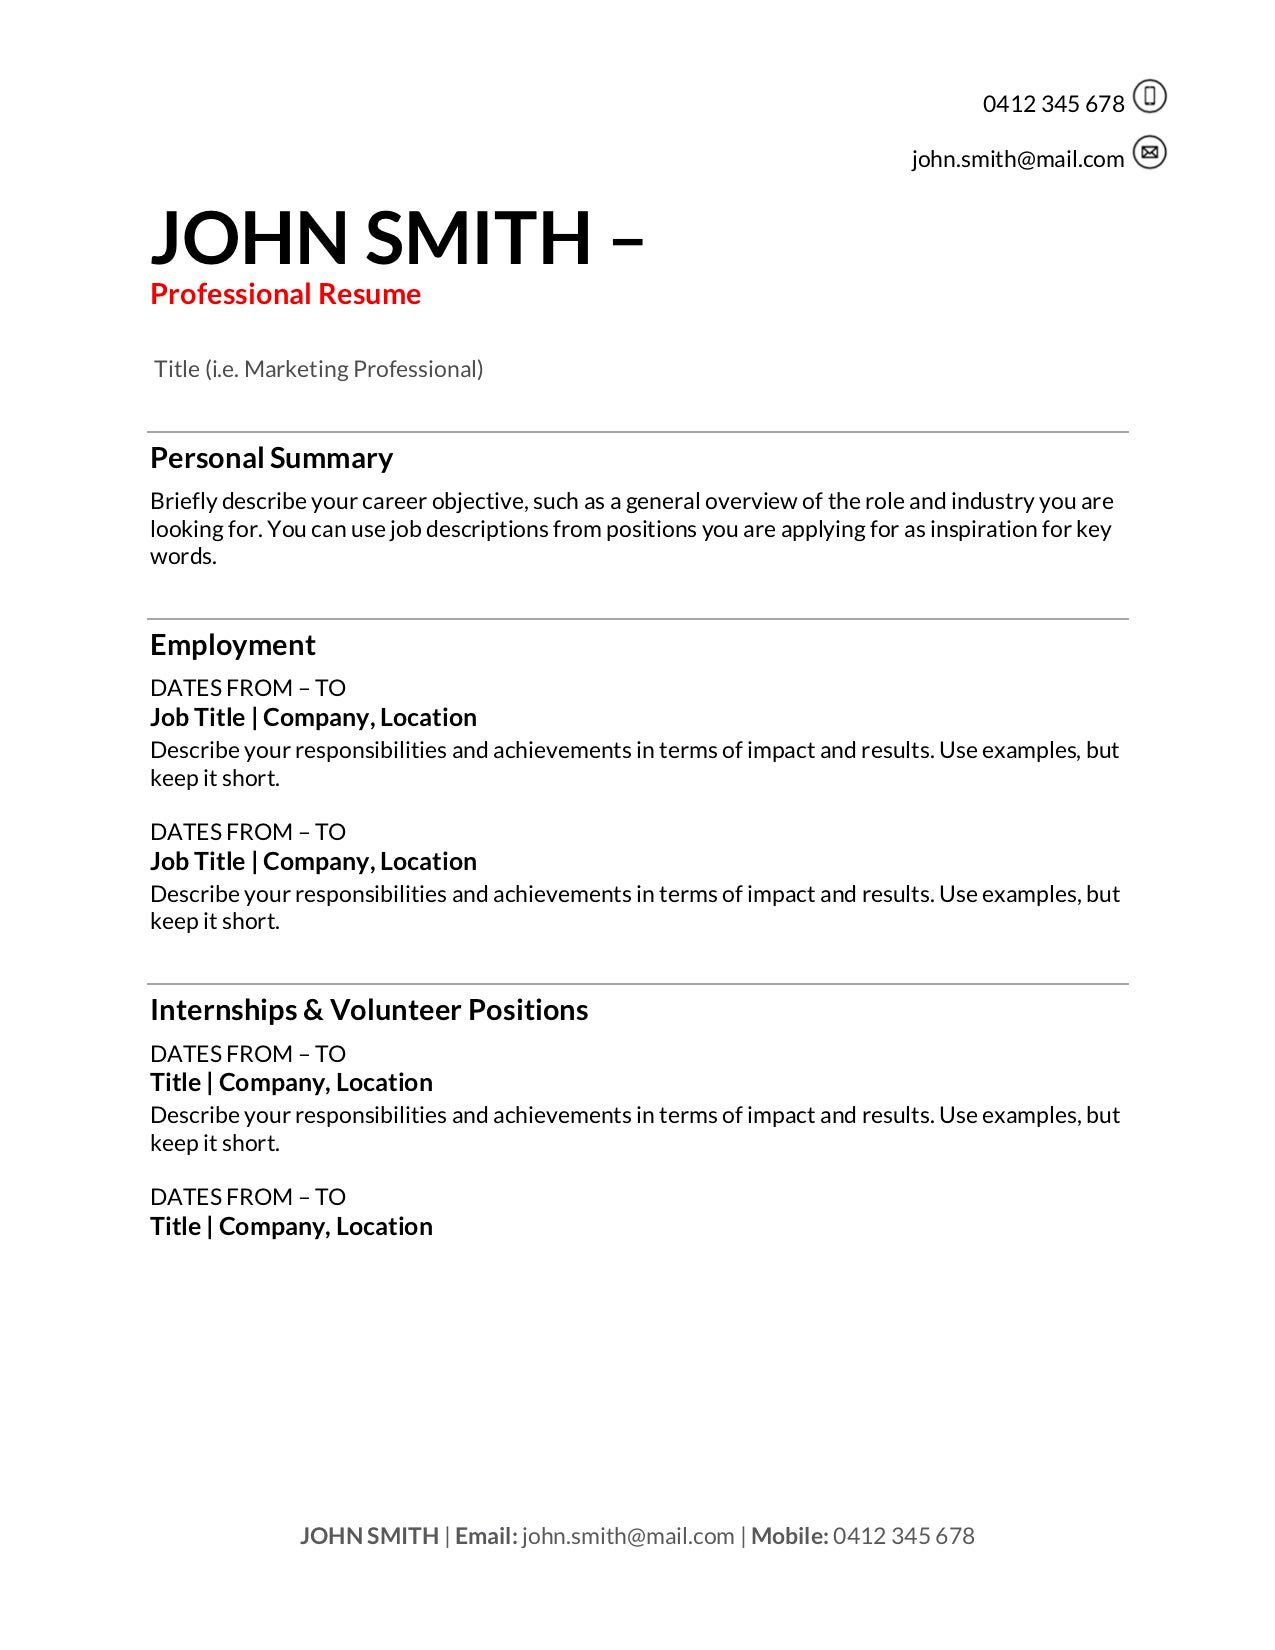 006 Impressive Resume Template For First Job High Def  After College Sample Student TeenagerFull